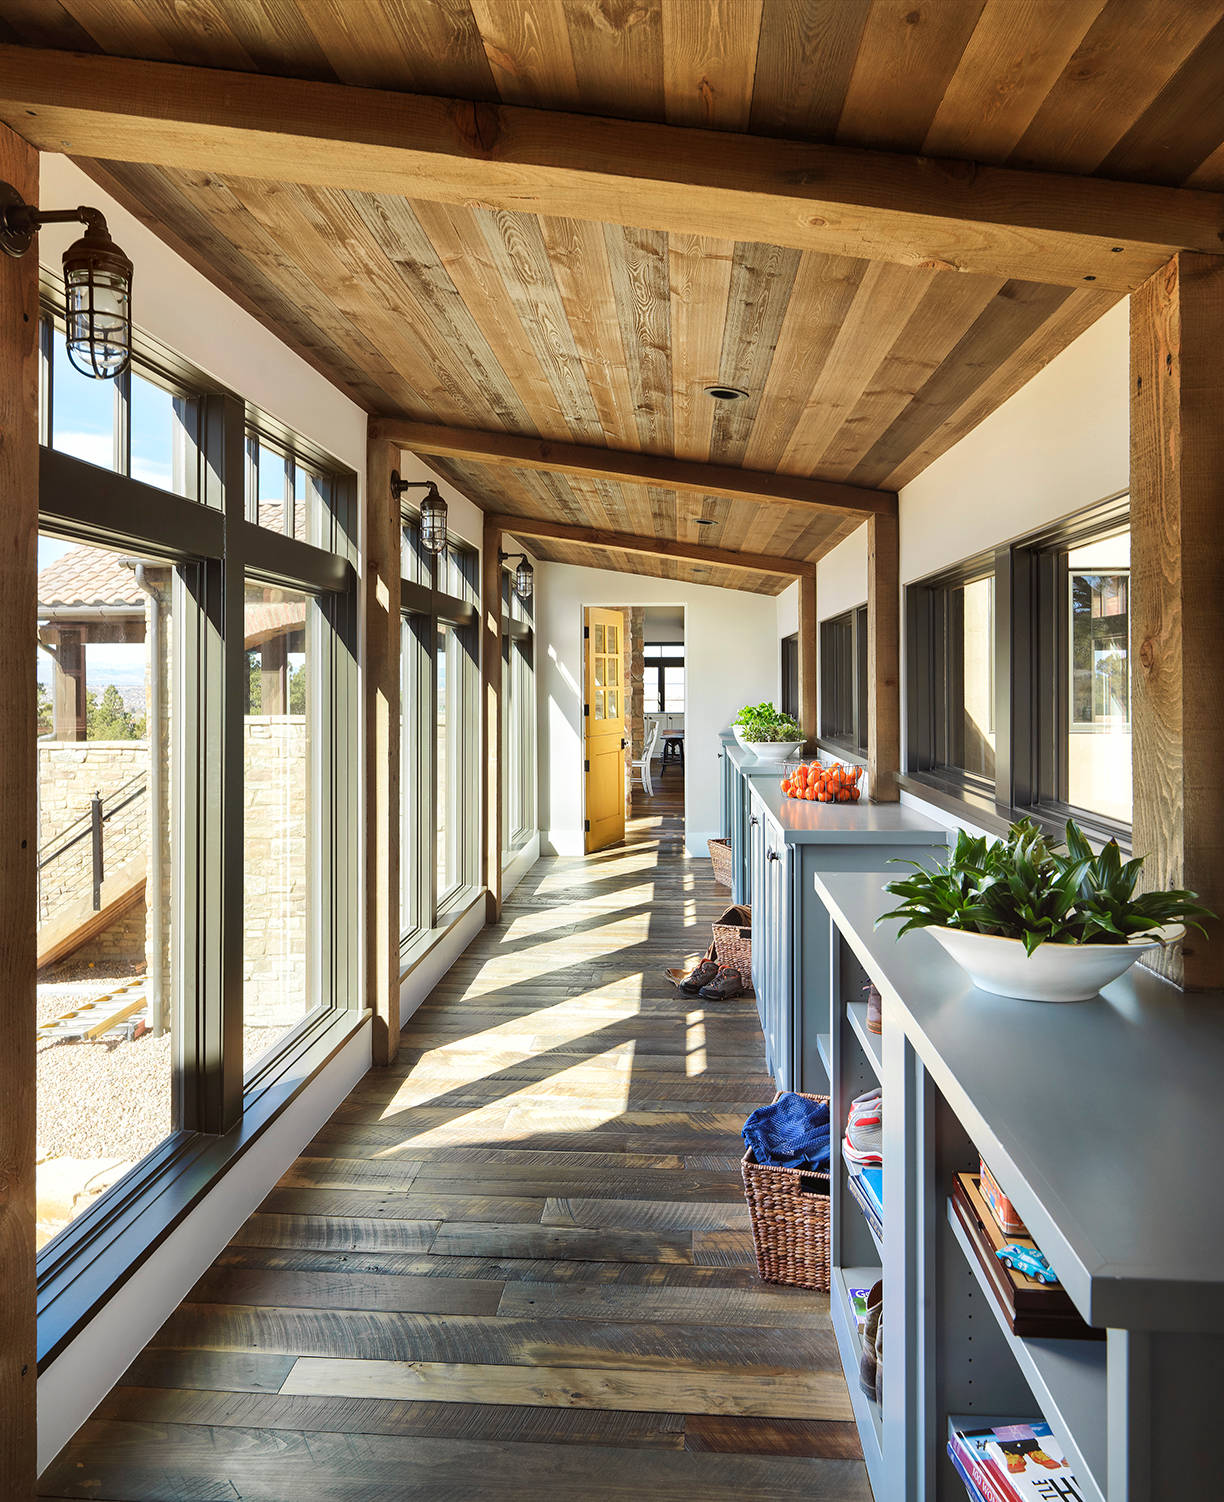 Home Interior Design Ideas Hall: 15 Great Rustic Hallway Designs That Will Inspire You With